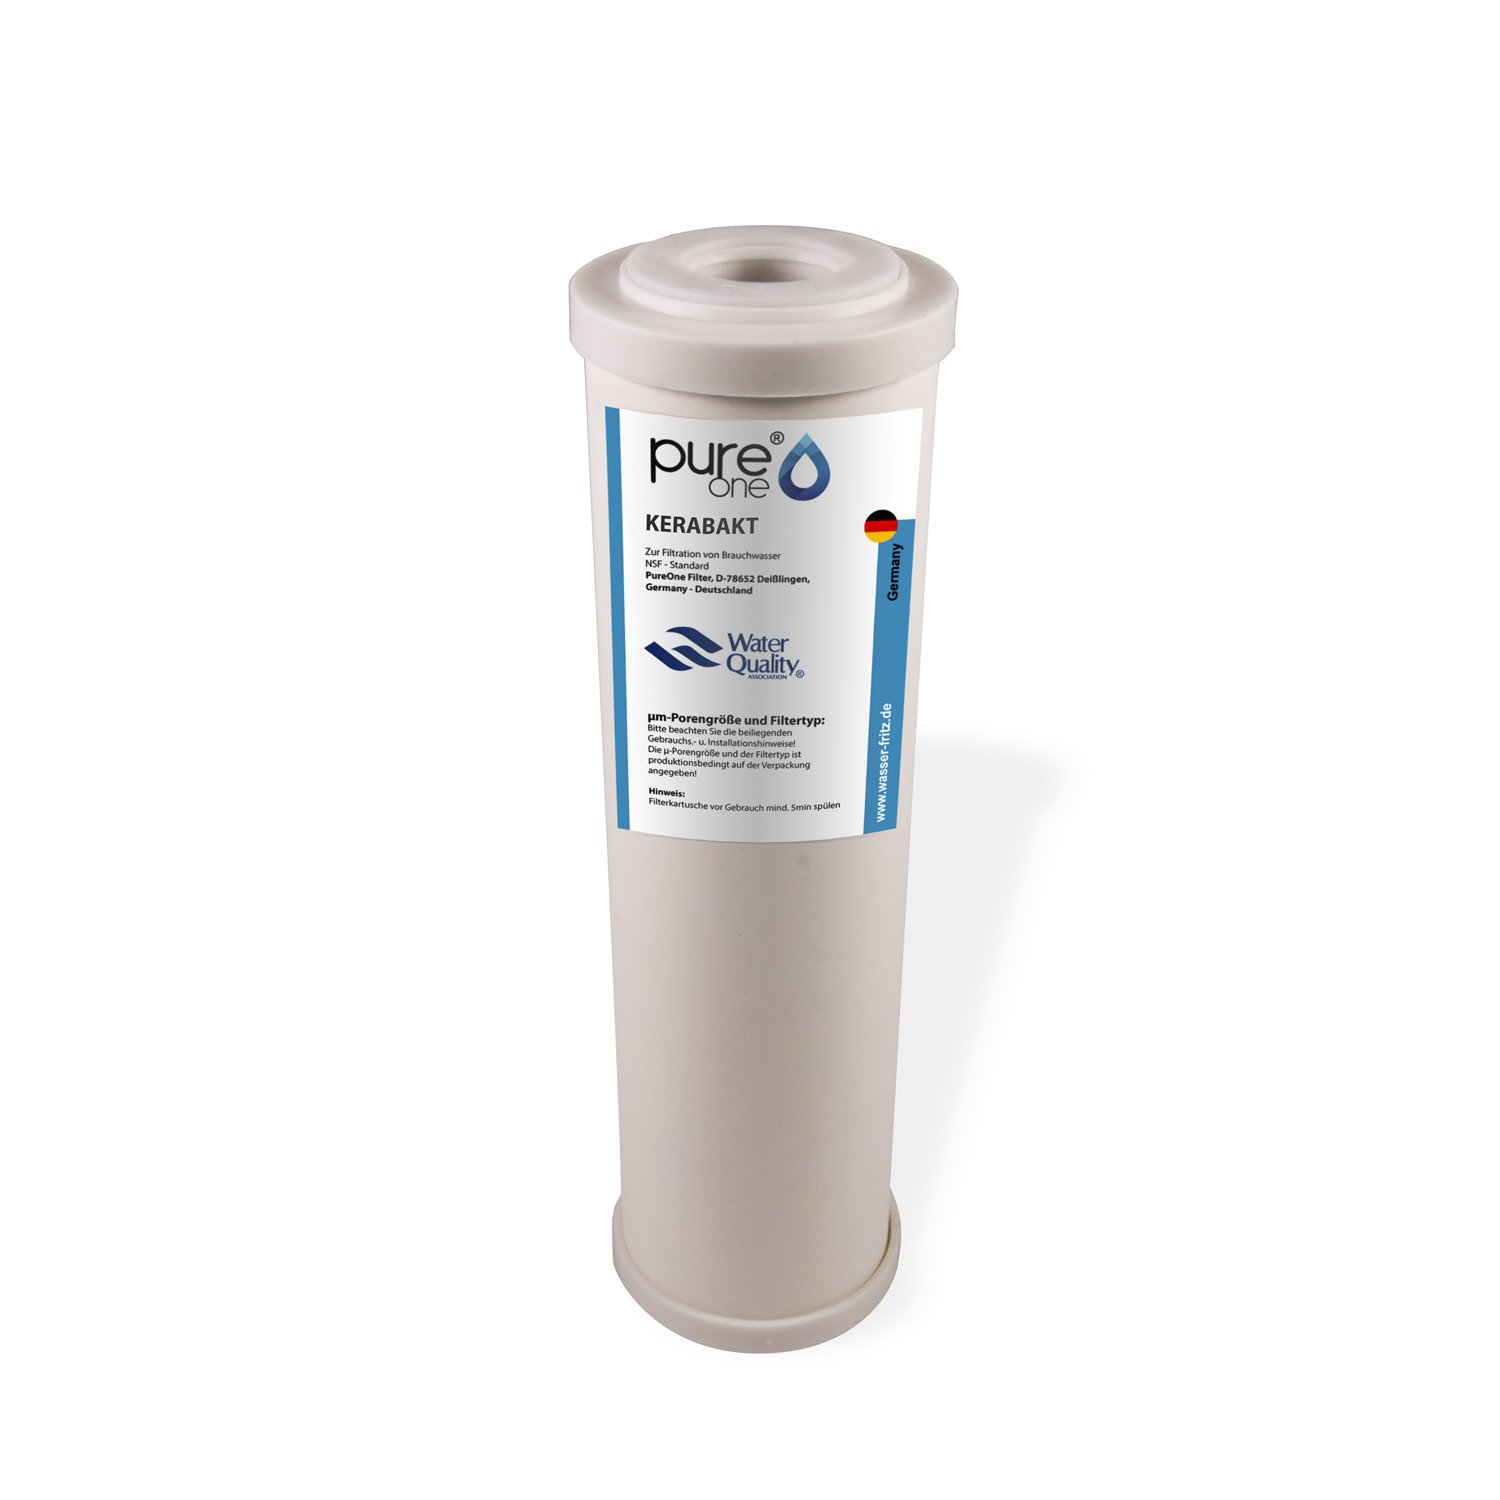 Germ filtration spores and pathogens 10 inches. viruses cistern Filter housing with ceramic filter cartridge For rainwater well water PureOne KBS1 Kerabact Kit 1/step filter system